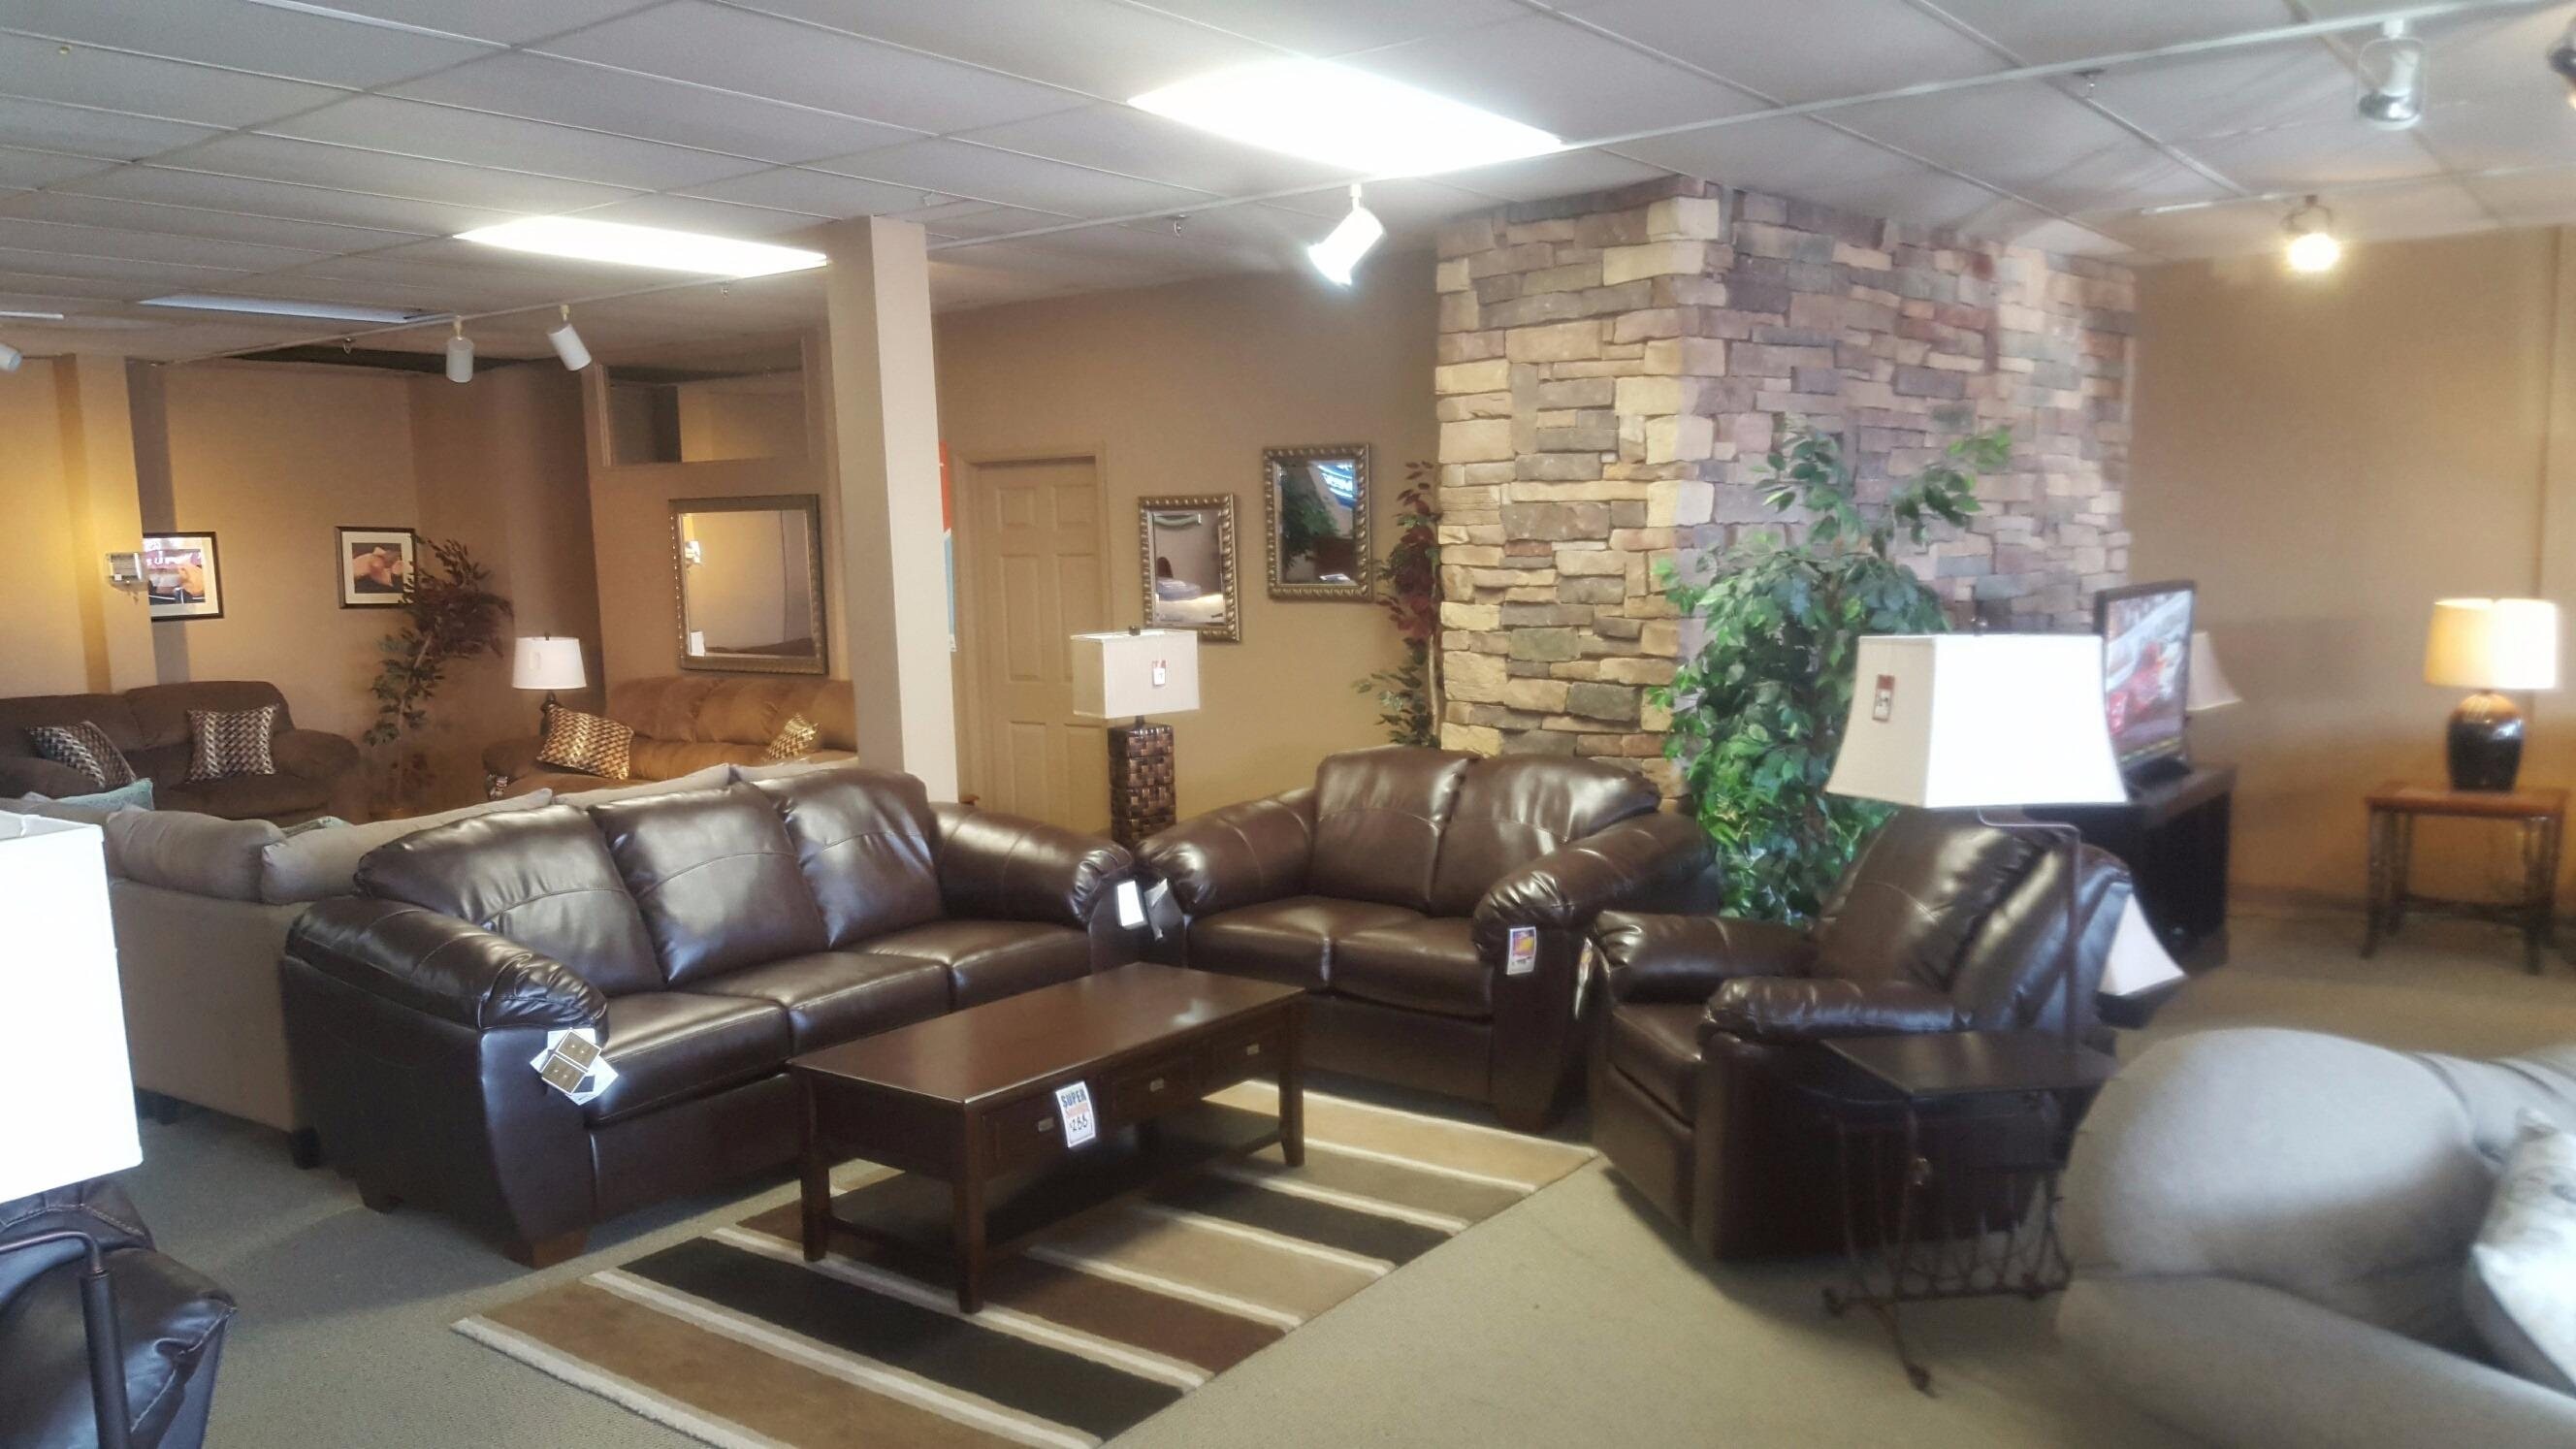 Schloemer Furniture And Sleep Center In Florence Ky